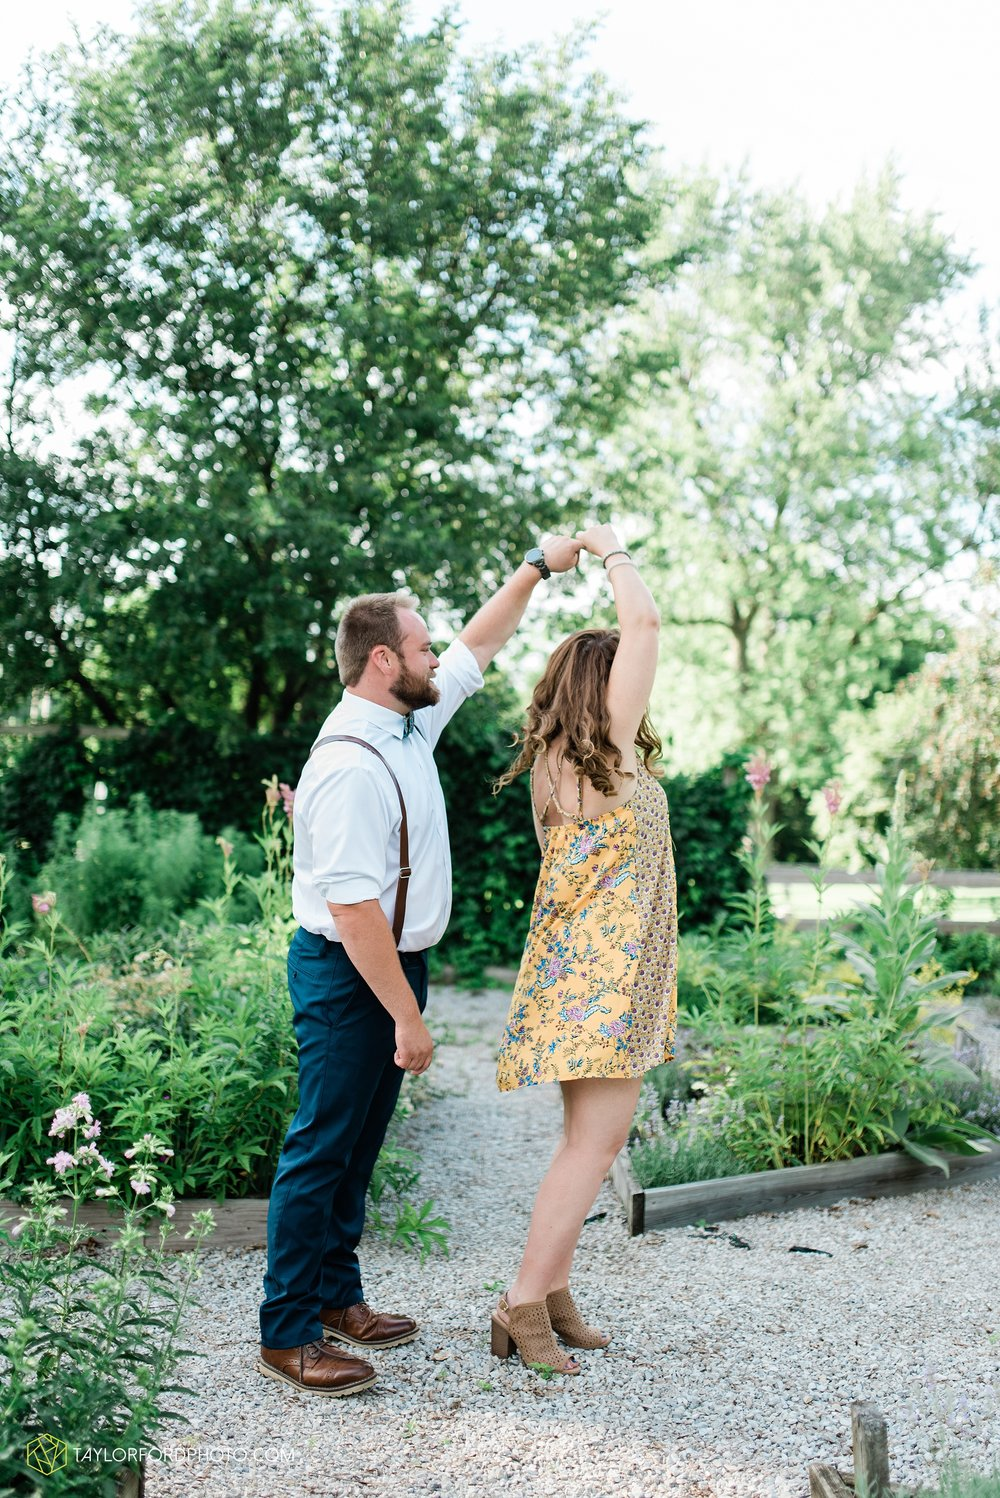 chelsey-jackson-young-downtown-fort-wayne-indiana-the-halls-deck-engagement-wedding-photographer-Taylor-Ford-Photography_8201.jpg